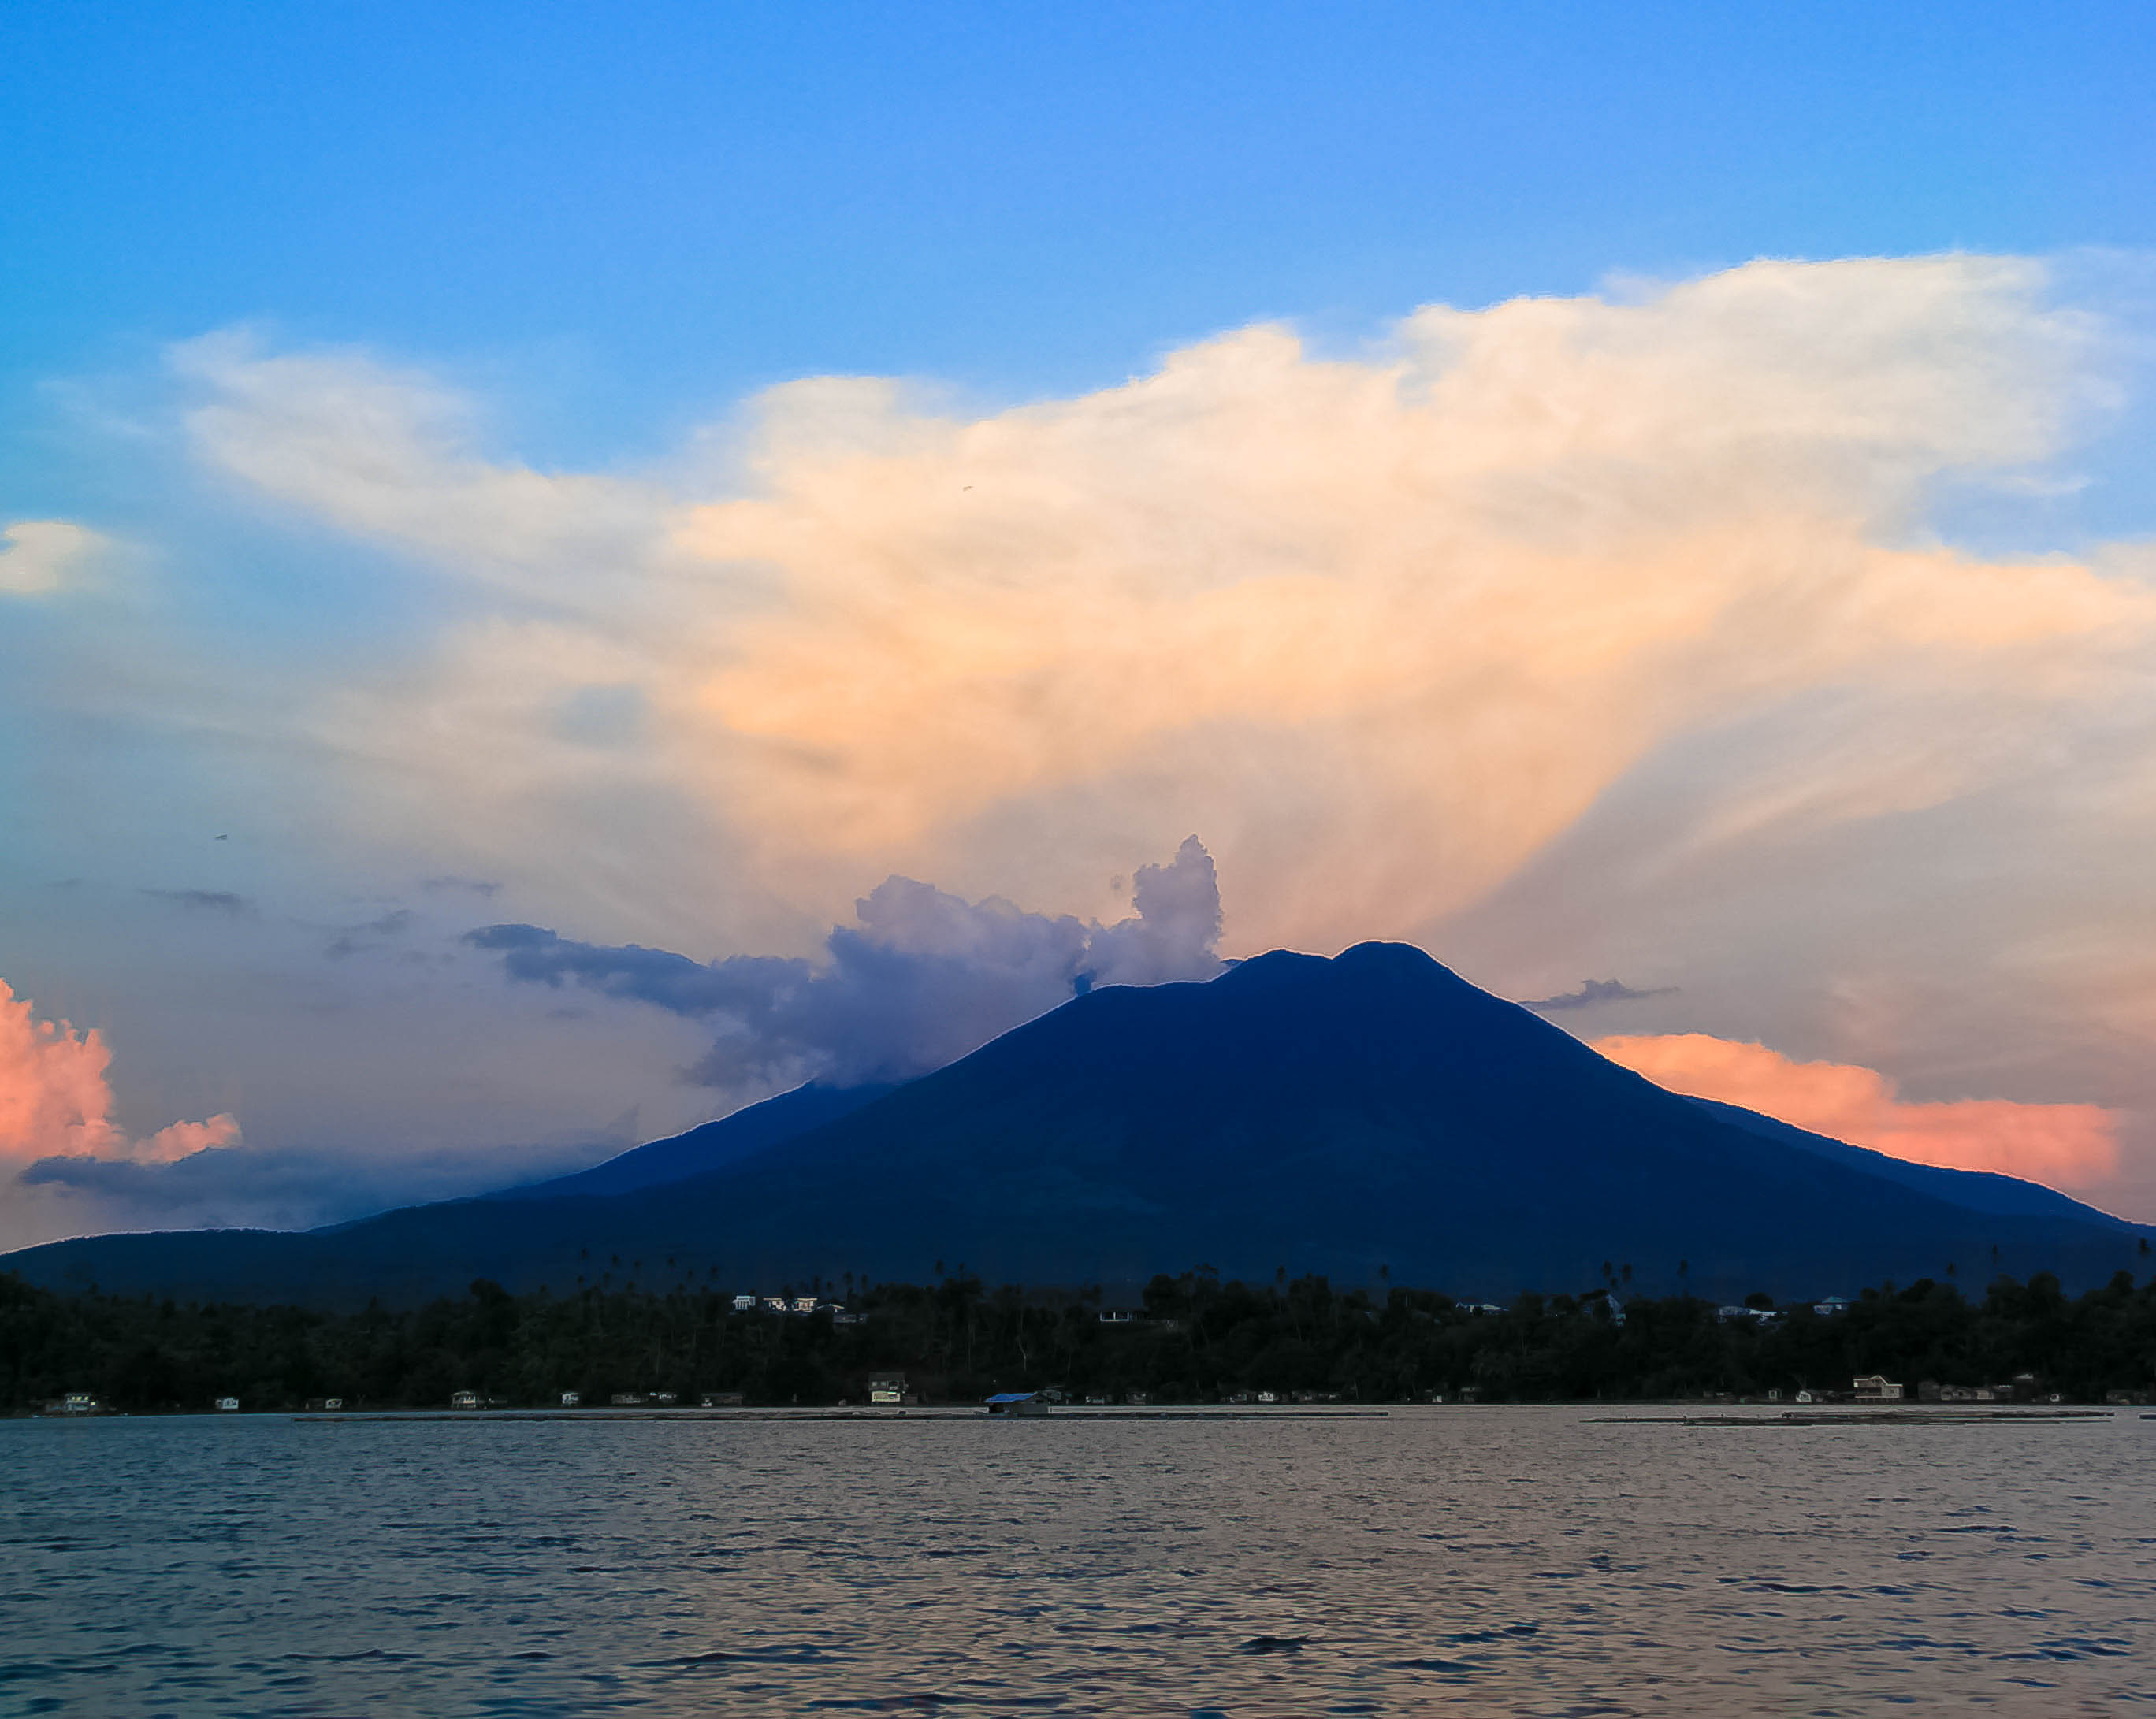 Silhouette of Mount Banahaw rising over a lake illuminated by the setting sun